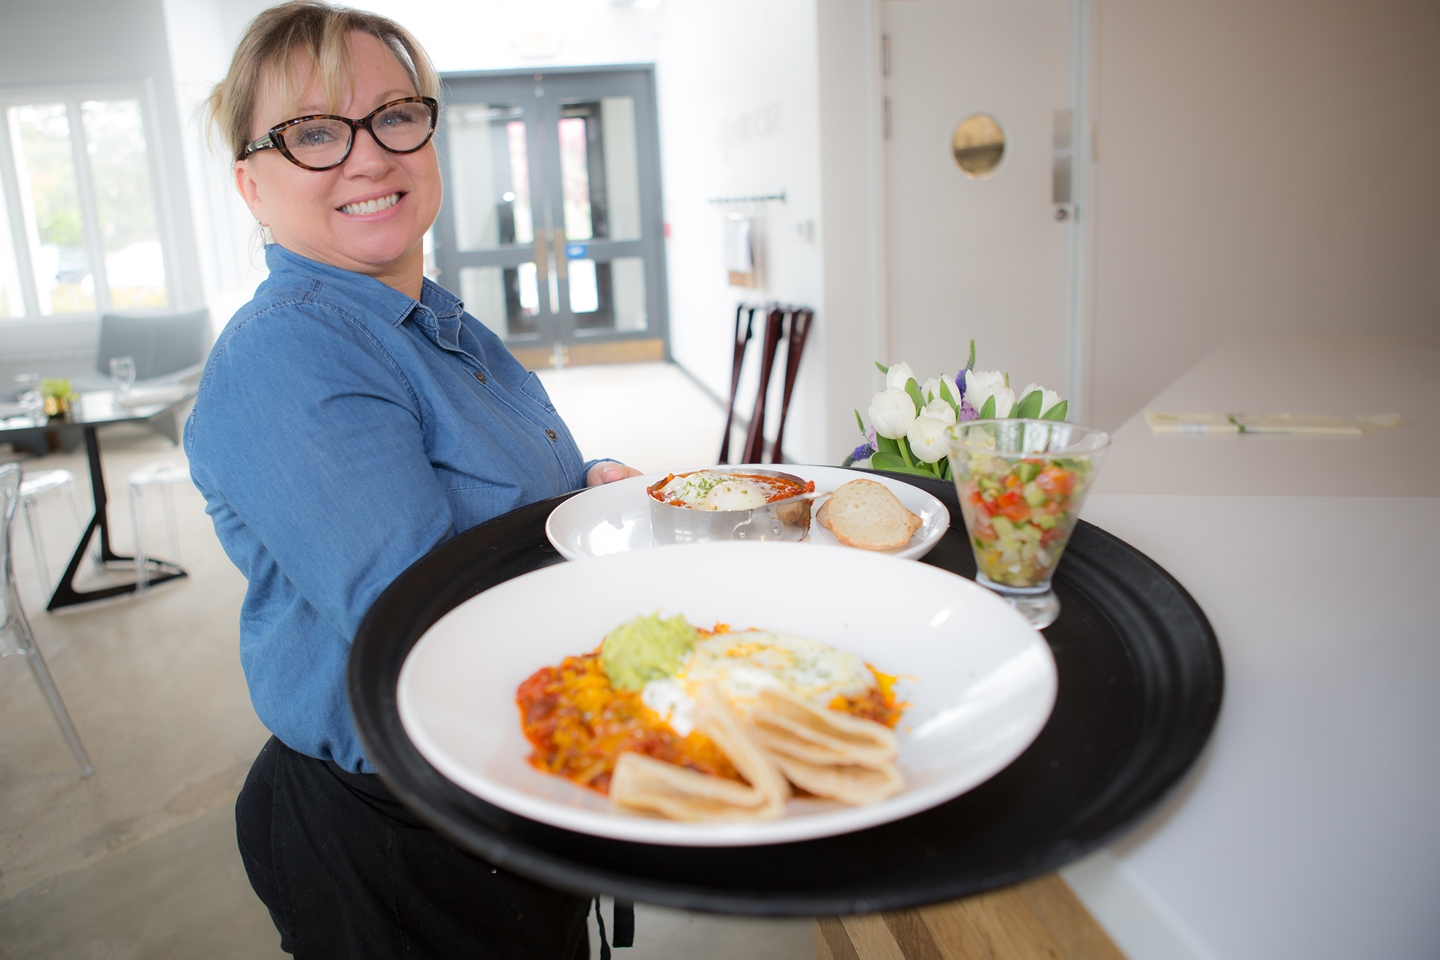 Soul Center Cafe's server, Renee McGregor, displays some of the delicious meals served at the Soul Center Café.